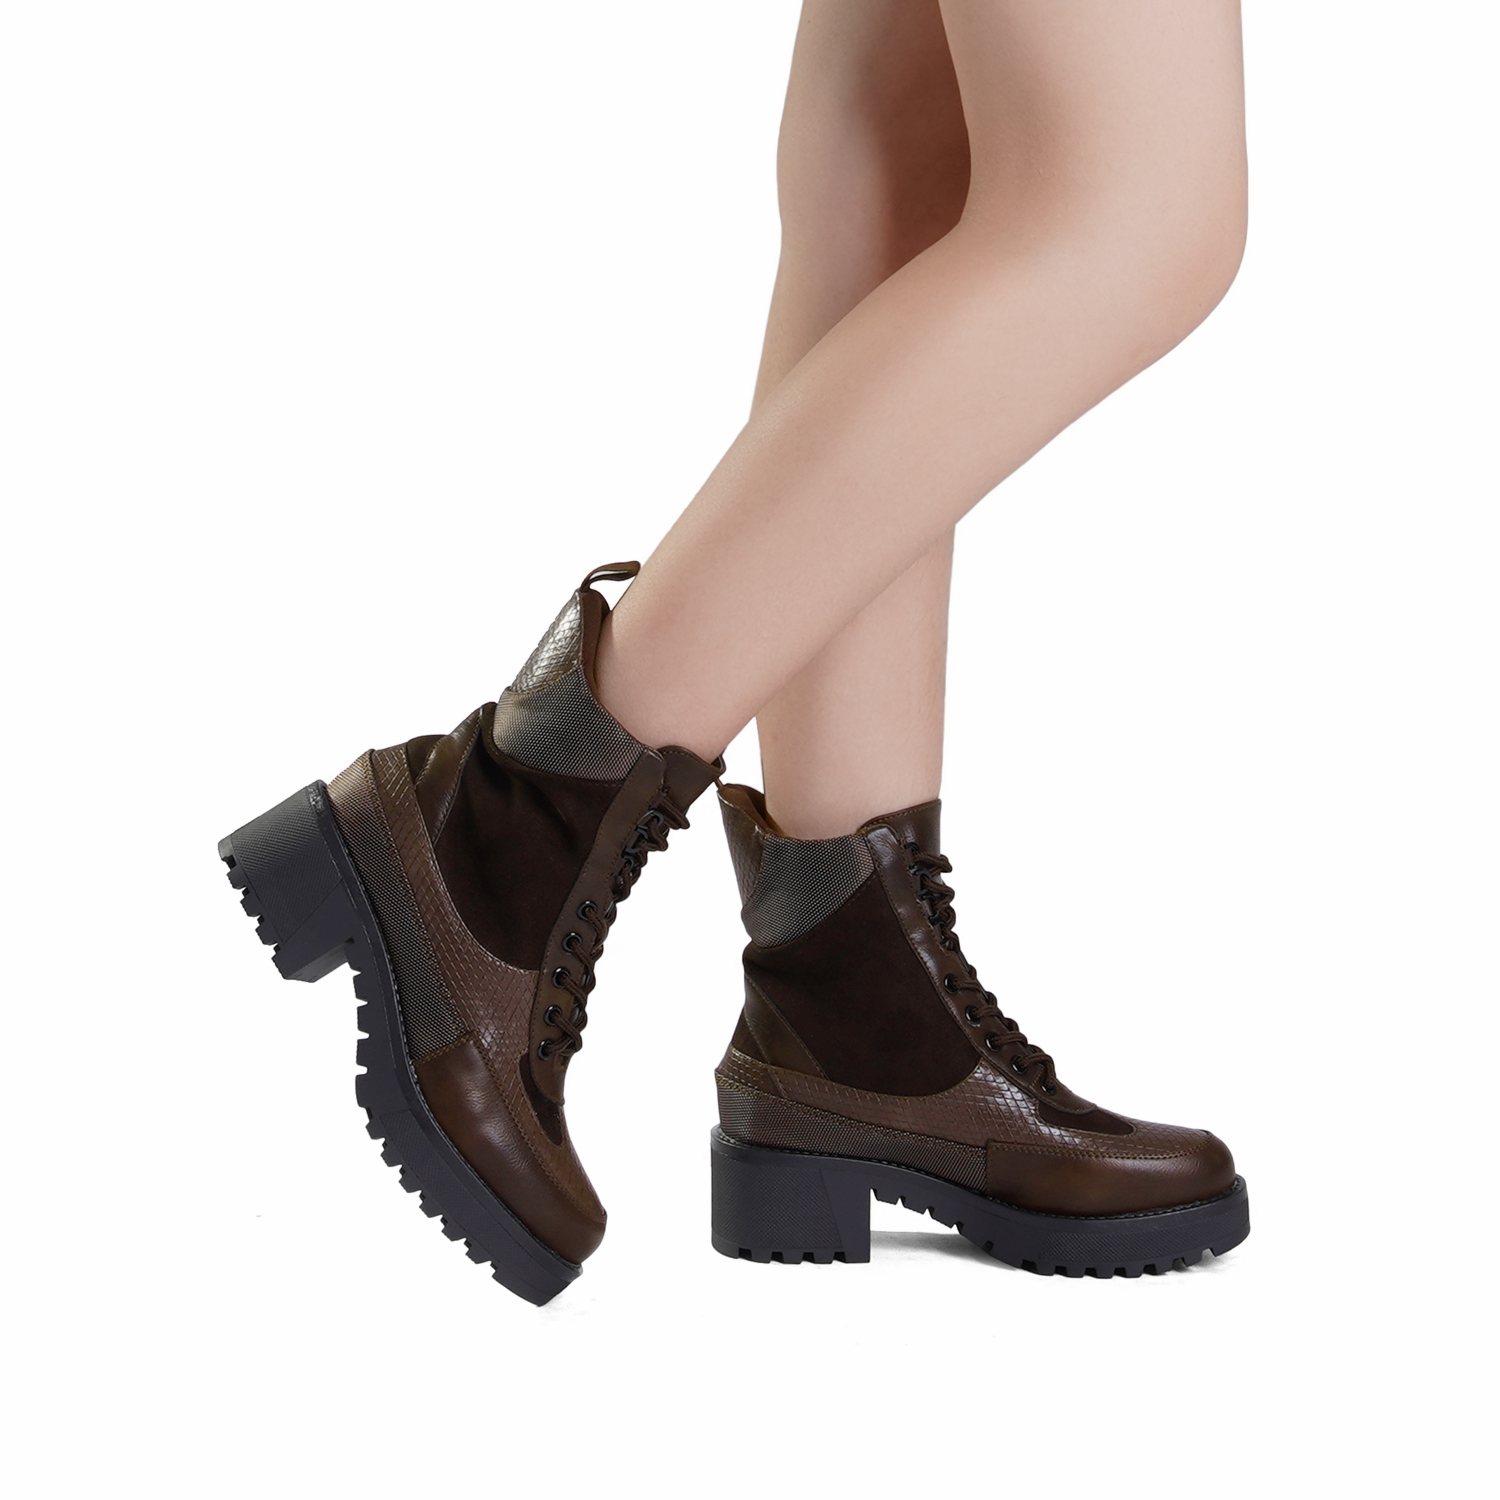 DREAM-PAIRS-Women-Lace-Up-Ankle-Boots-Platform-Chunky-Heel-Martin-Combat-Boots thumbnail 31